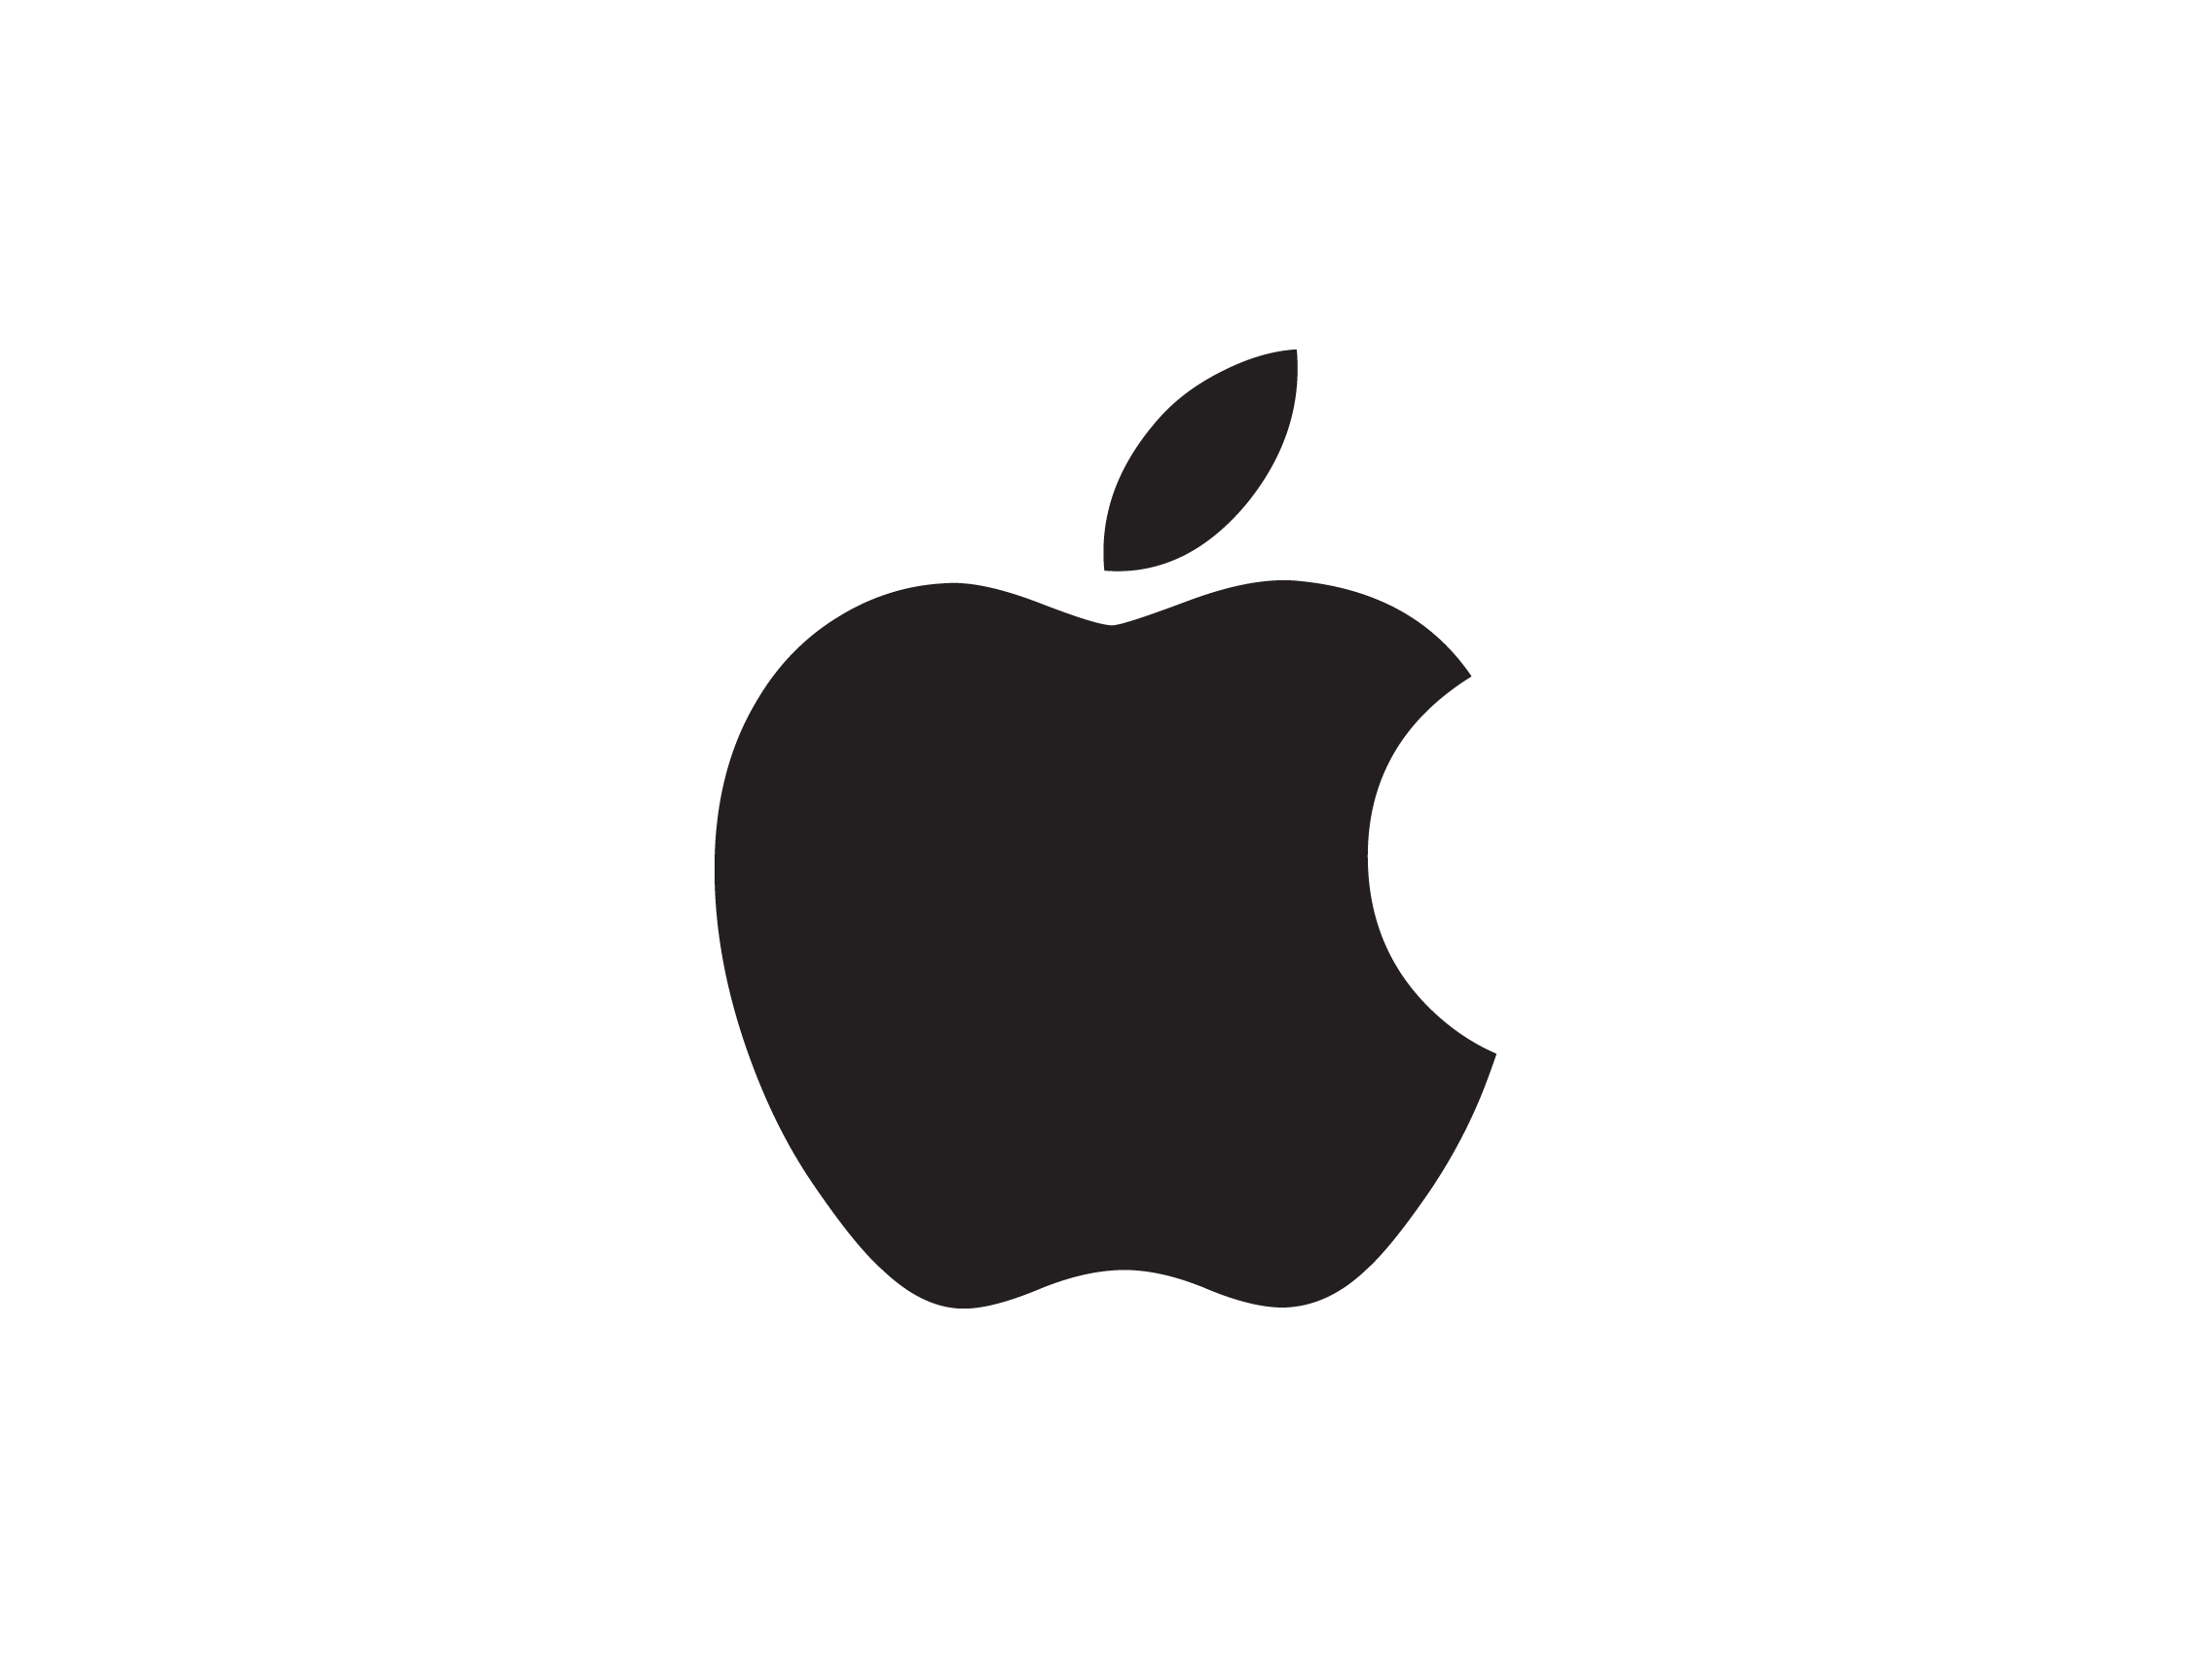 Apple logos or banner clipart jpg freeuse library http://www.clohound.com/new-ios-version-fixes-big-security-problem ... jpg freeuse library